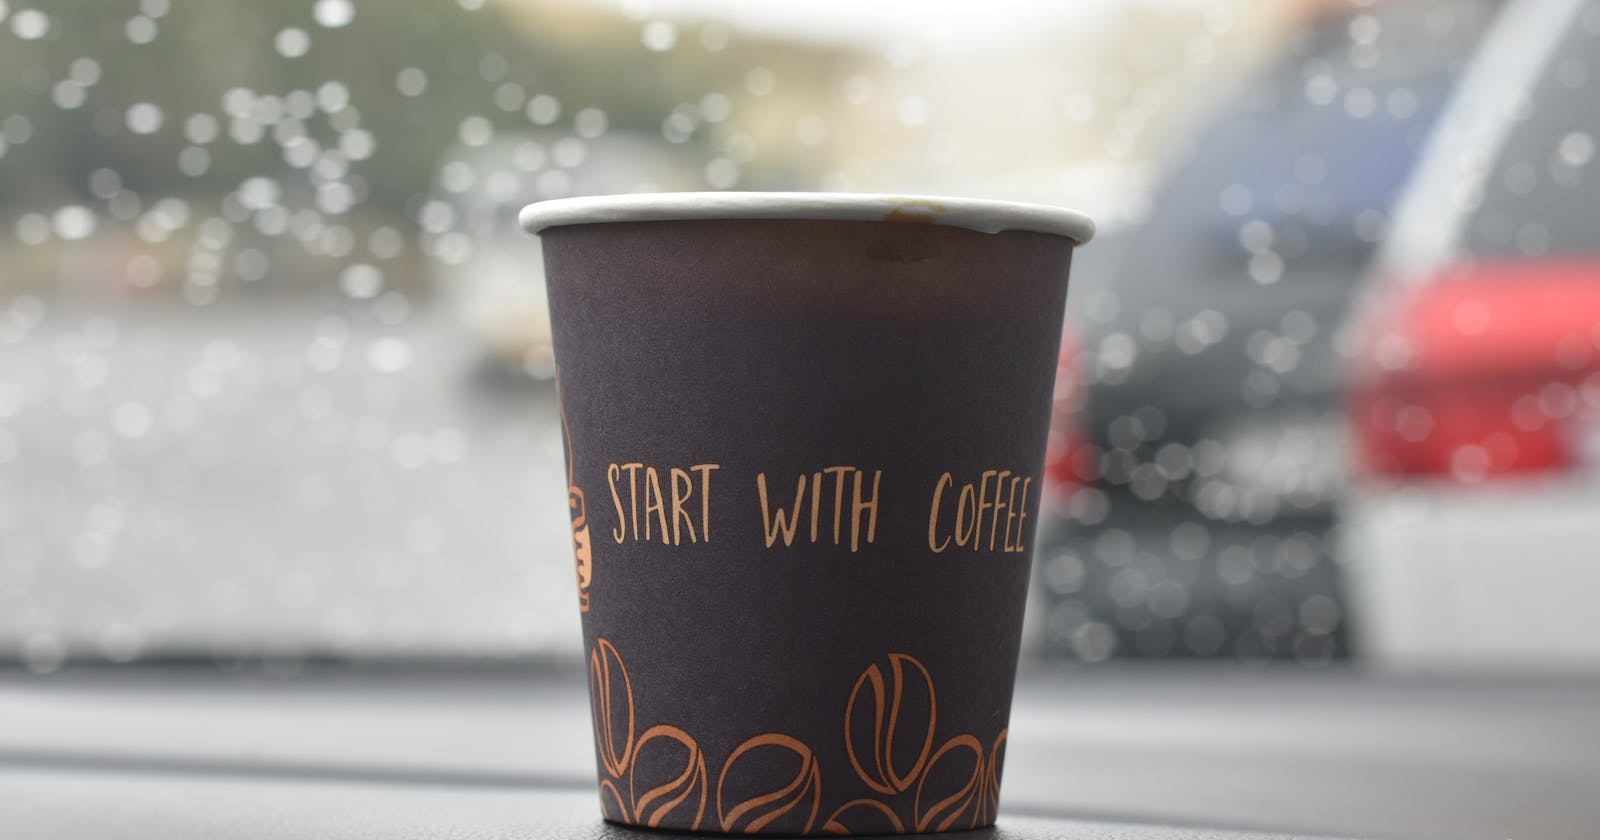 The First Coffee